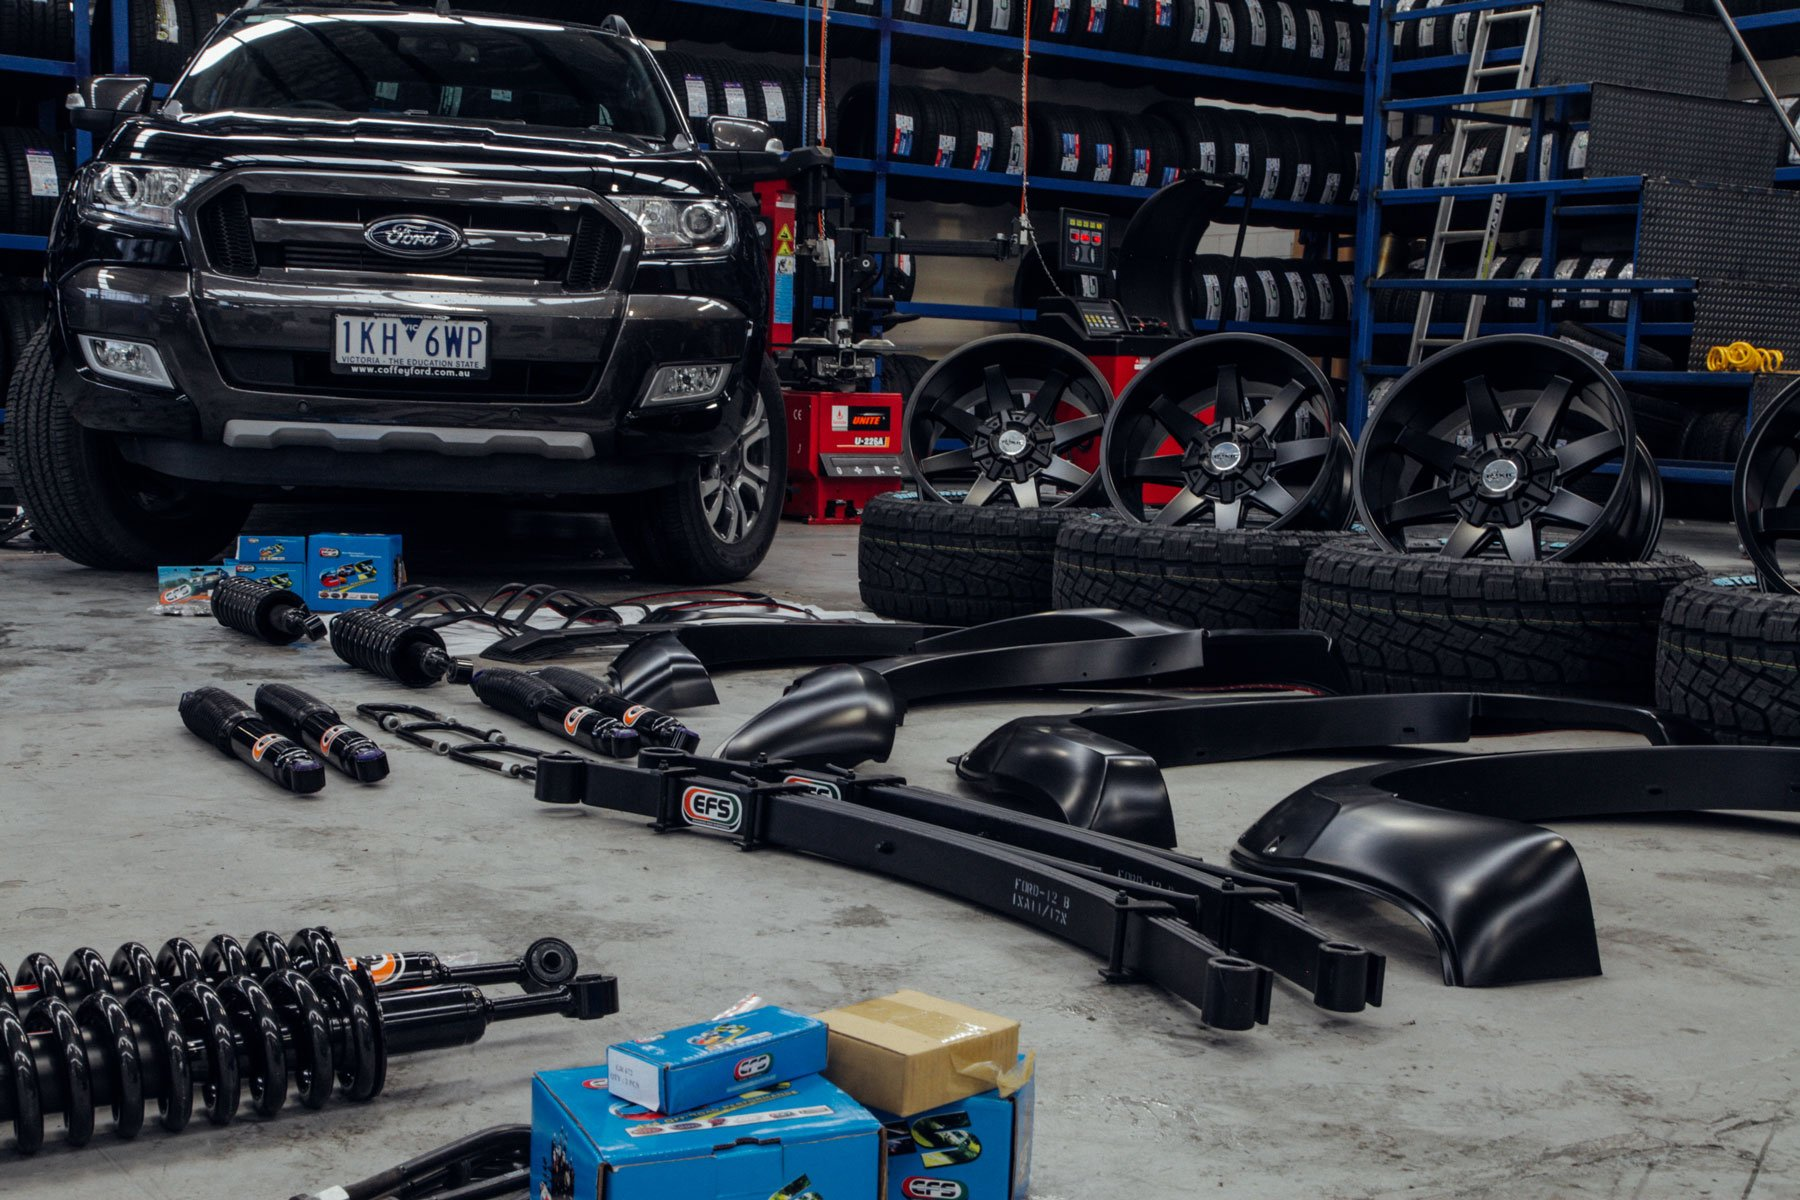 black-px-ford-ranger-surrounded-by-4x4-accessories